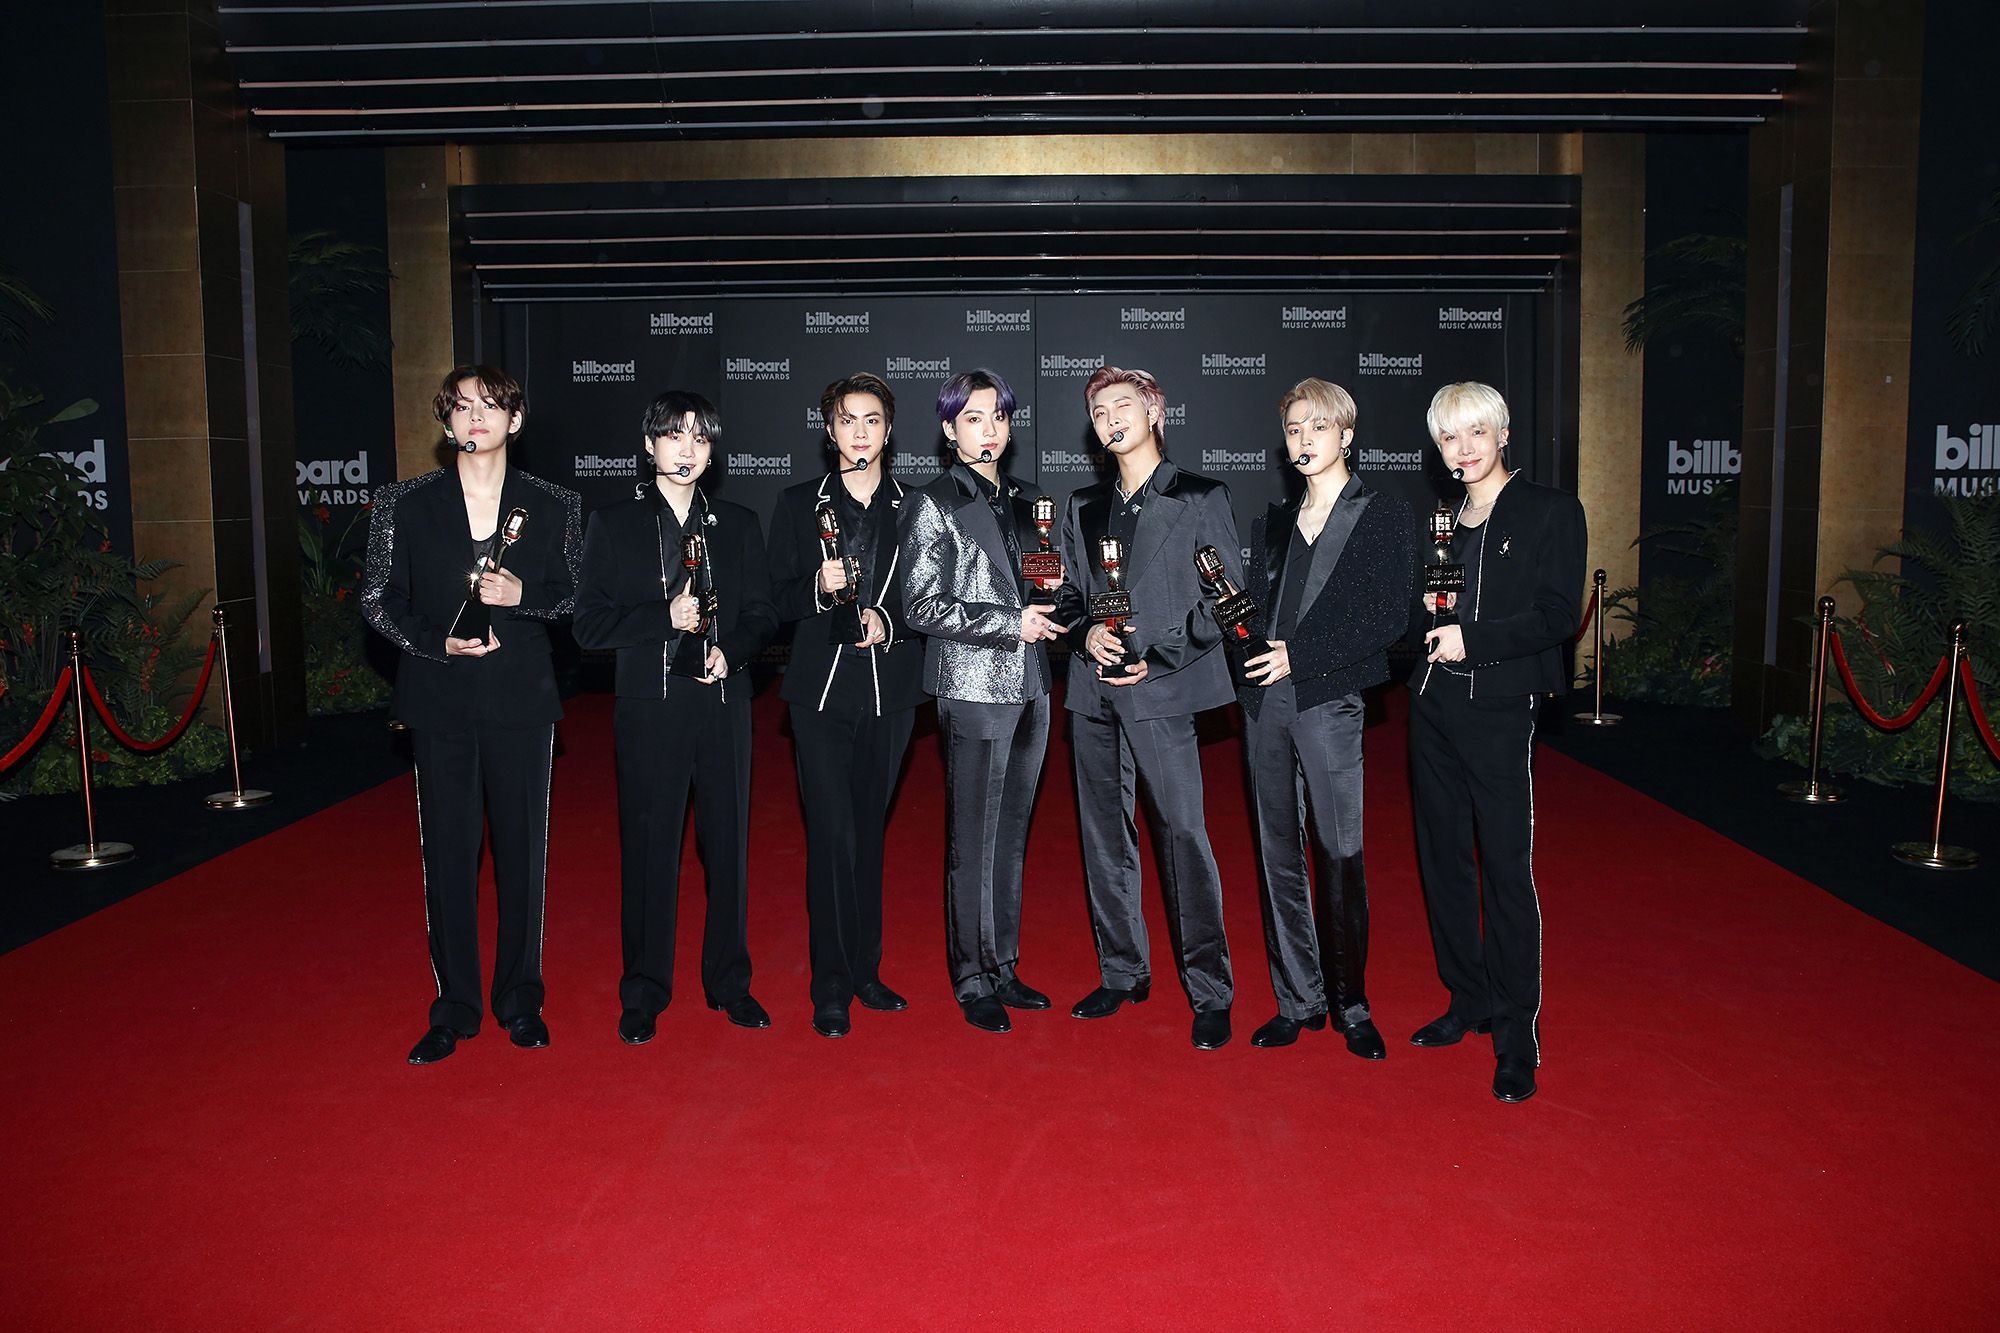 (L-R) In this image released on May 23, V, Suga, Jin, Jungkook, RM, Jimin, and J-Hope of BTS, winners of the Top Selling Song Award for 'Dynamite,' pose for the 2021 Billboard Music Awards, broadcast on May 23, 2021 at Microsoft Theater in Los Angeles, California. (Photo by Billboard Music Awards 2021 via Getty Images)